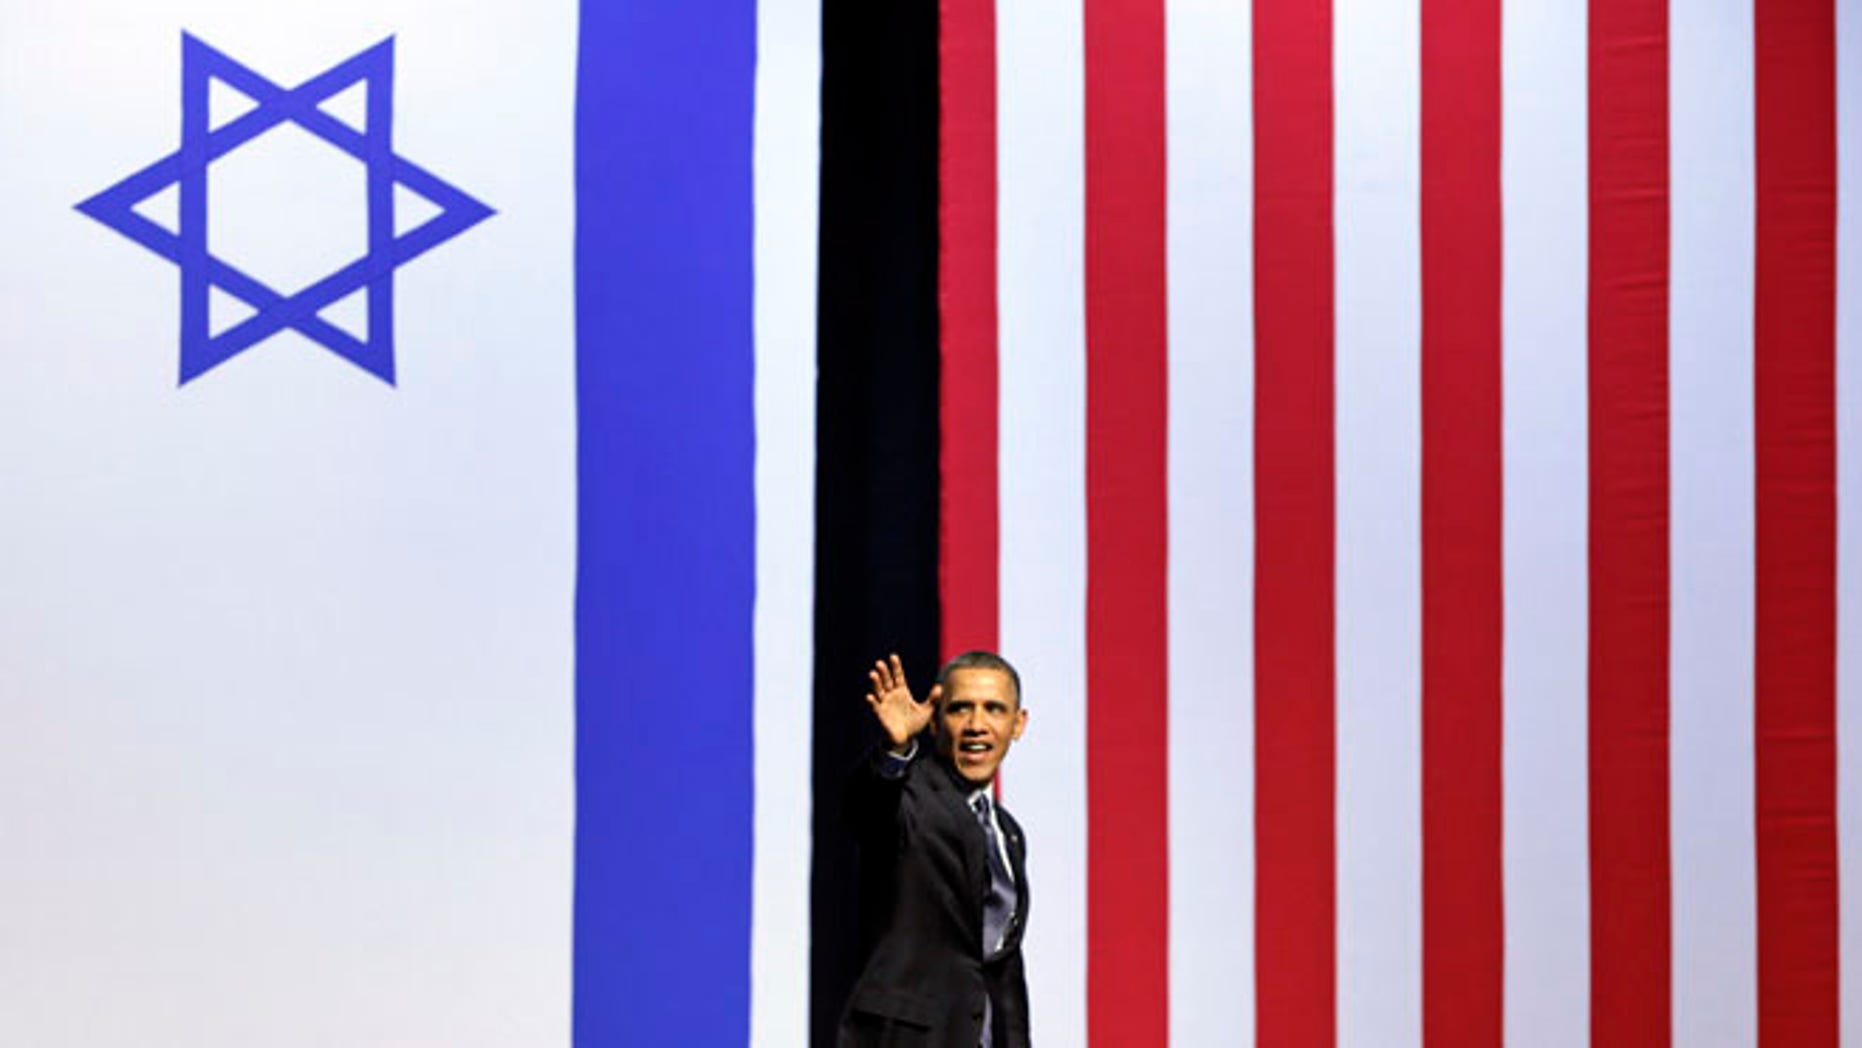 March 21, 2013: President Barack Obama waves as he leaves the stage after speaking at the International Convention Center in Jerusalem.